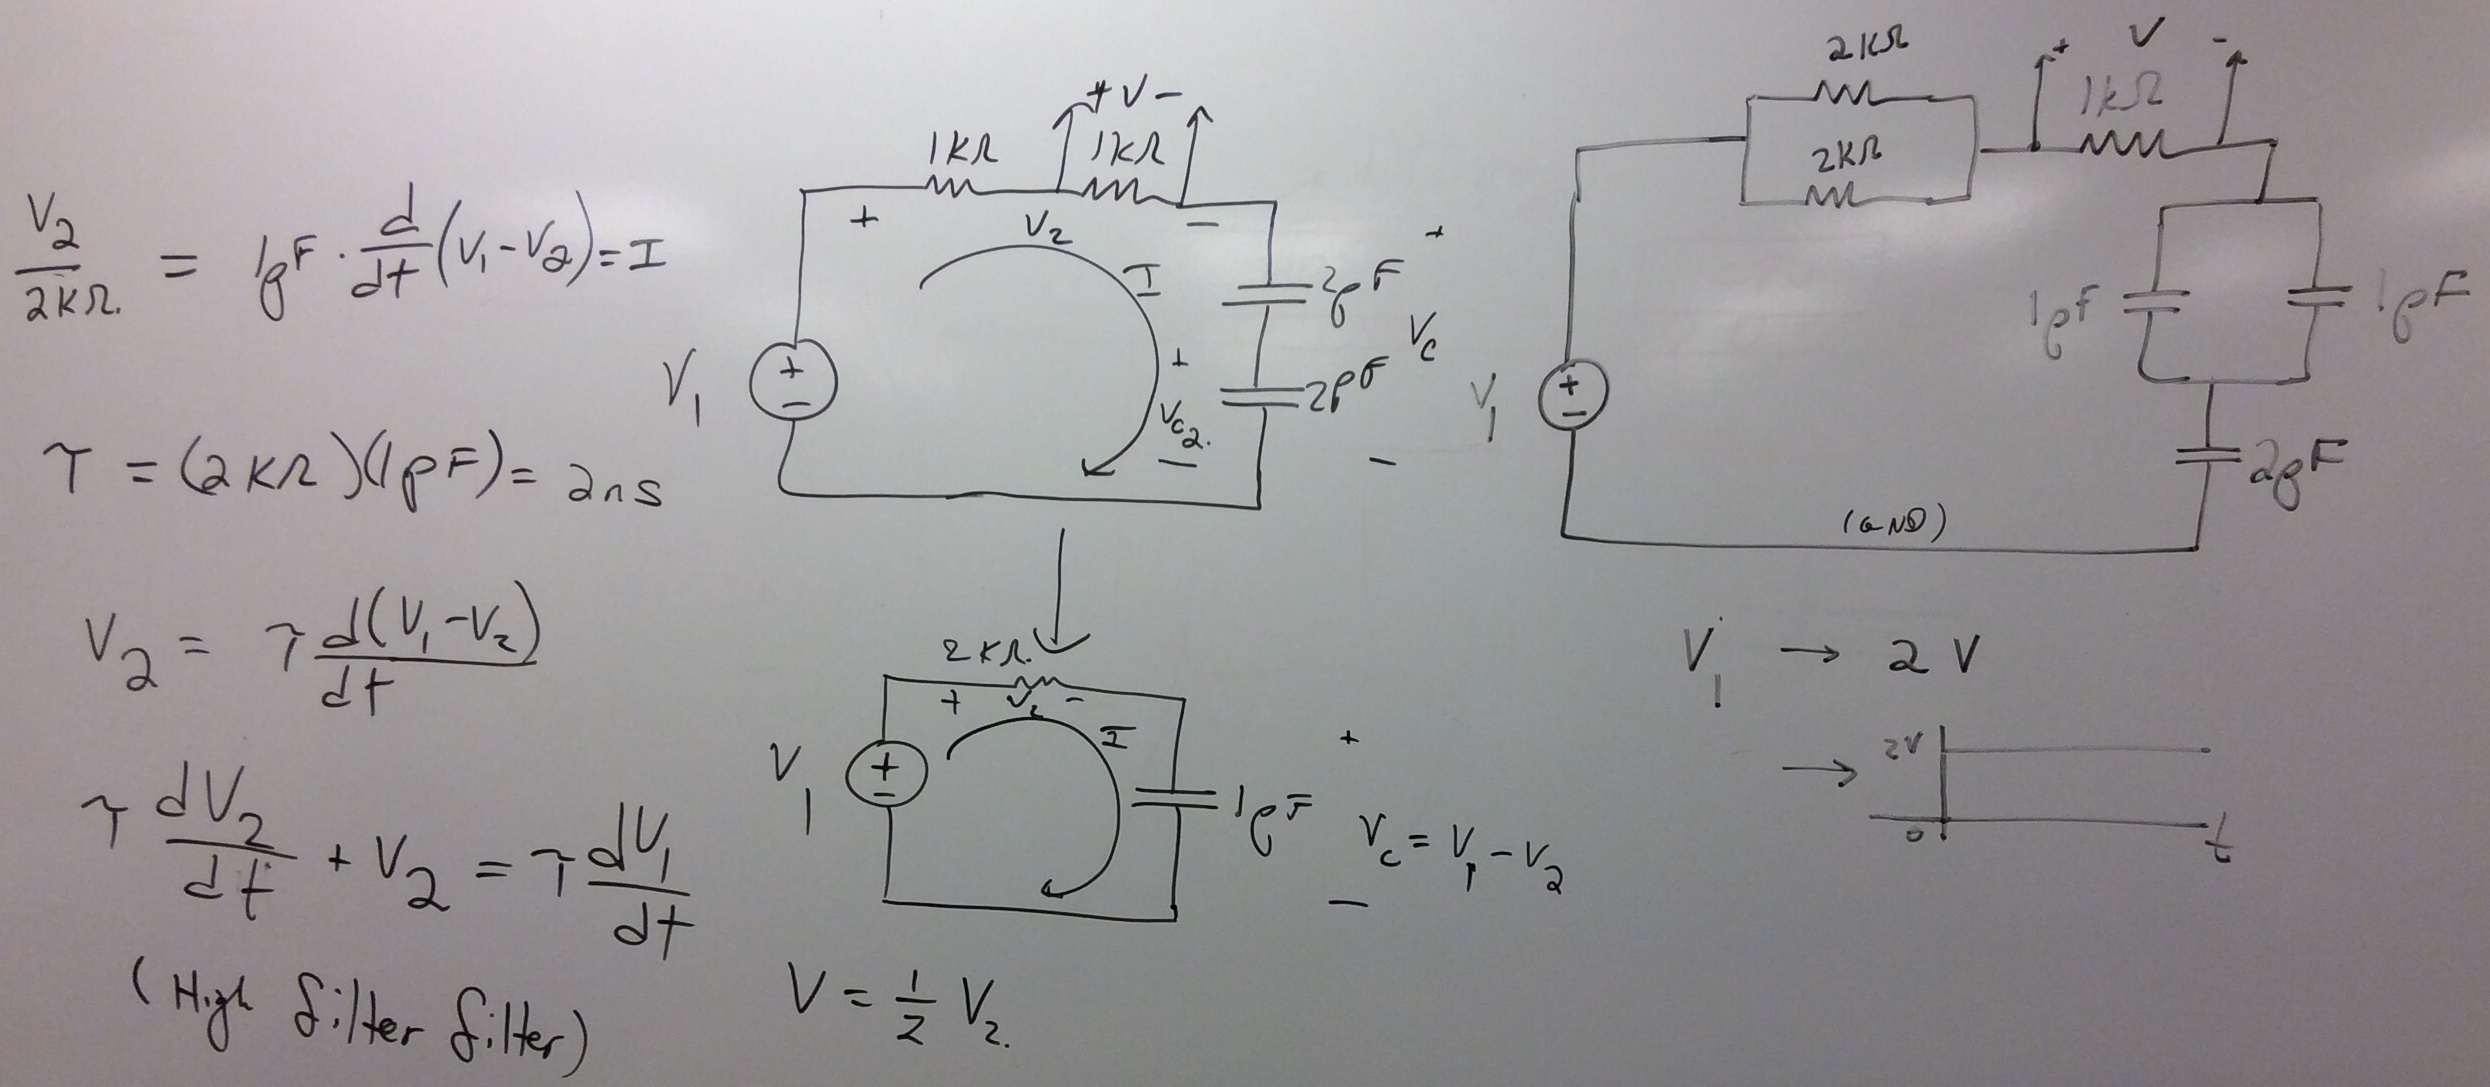 My Previous Op Amp Circuit I Thought Id Analyze The Basic Circuit